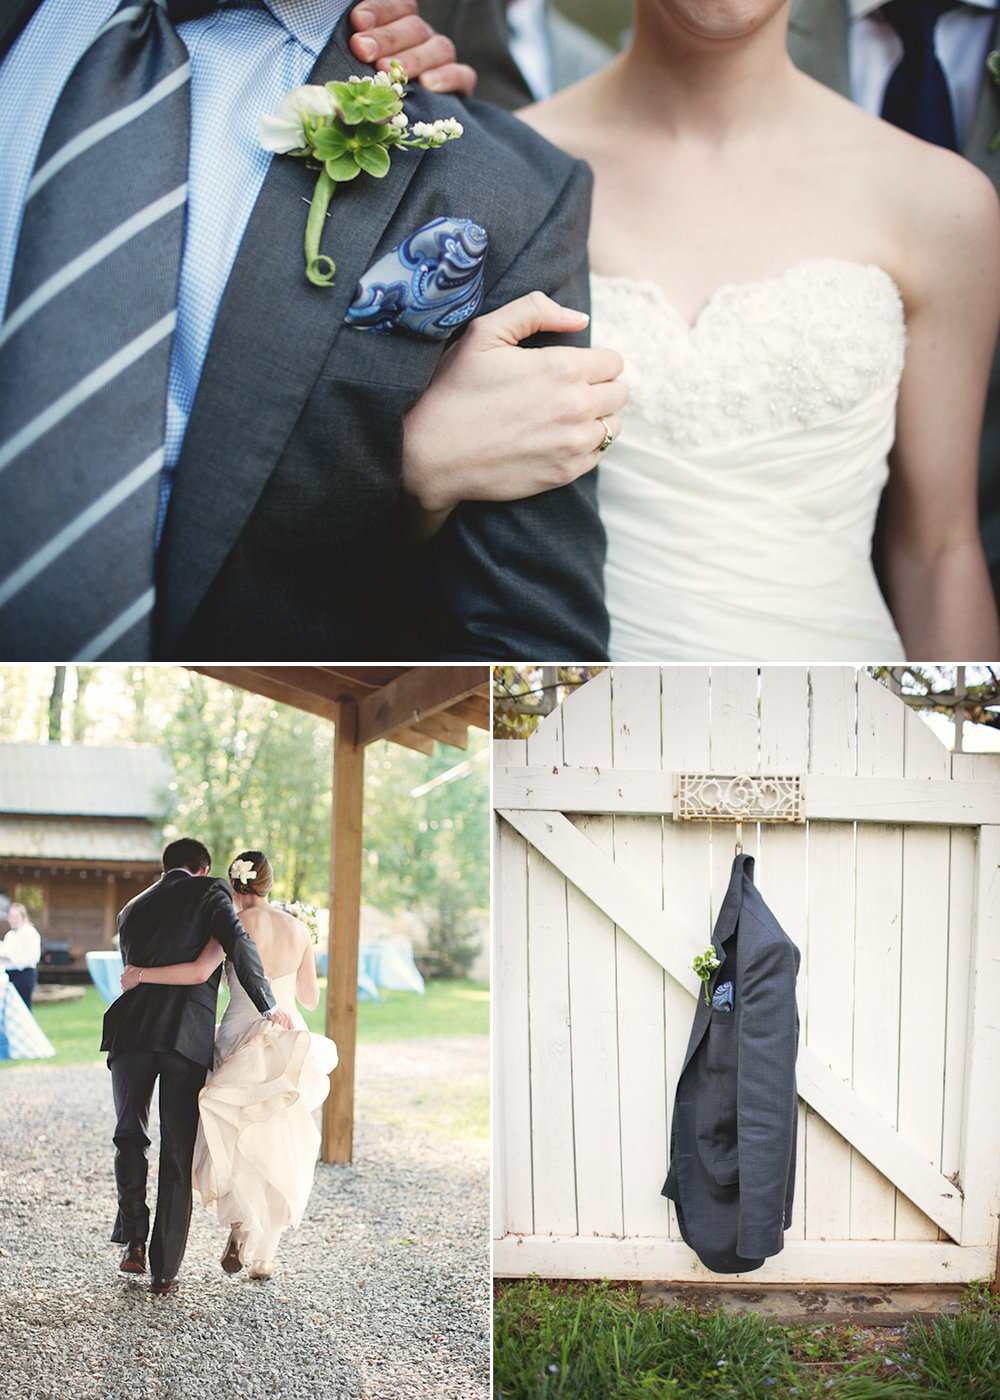 Ivory-wedding-dress-casual-grooms-attire-striped-necktie-outdoor-rustic-wedding.full